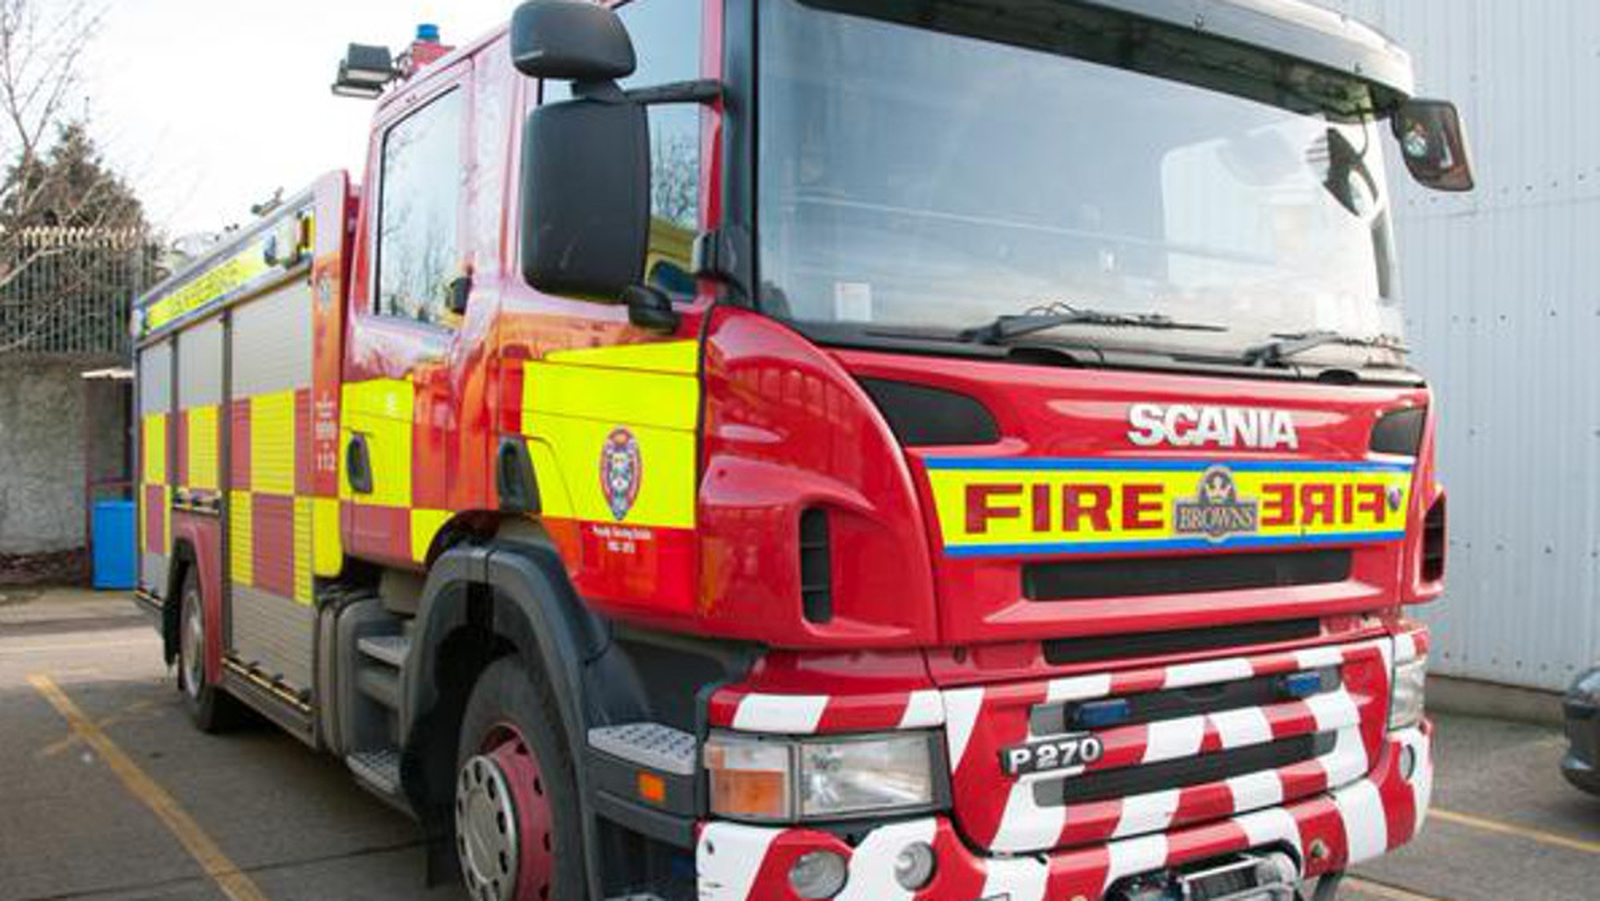 Blaze at high-rise building in Tallaght